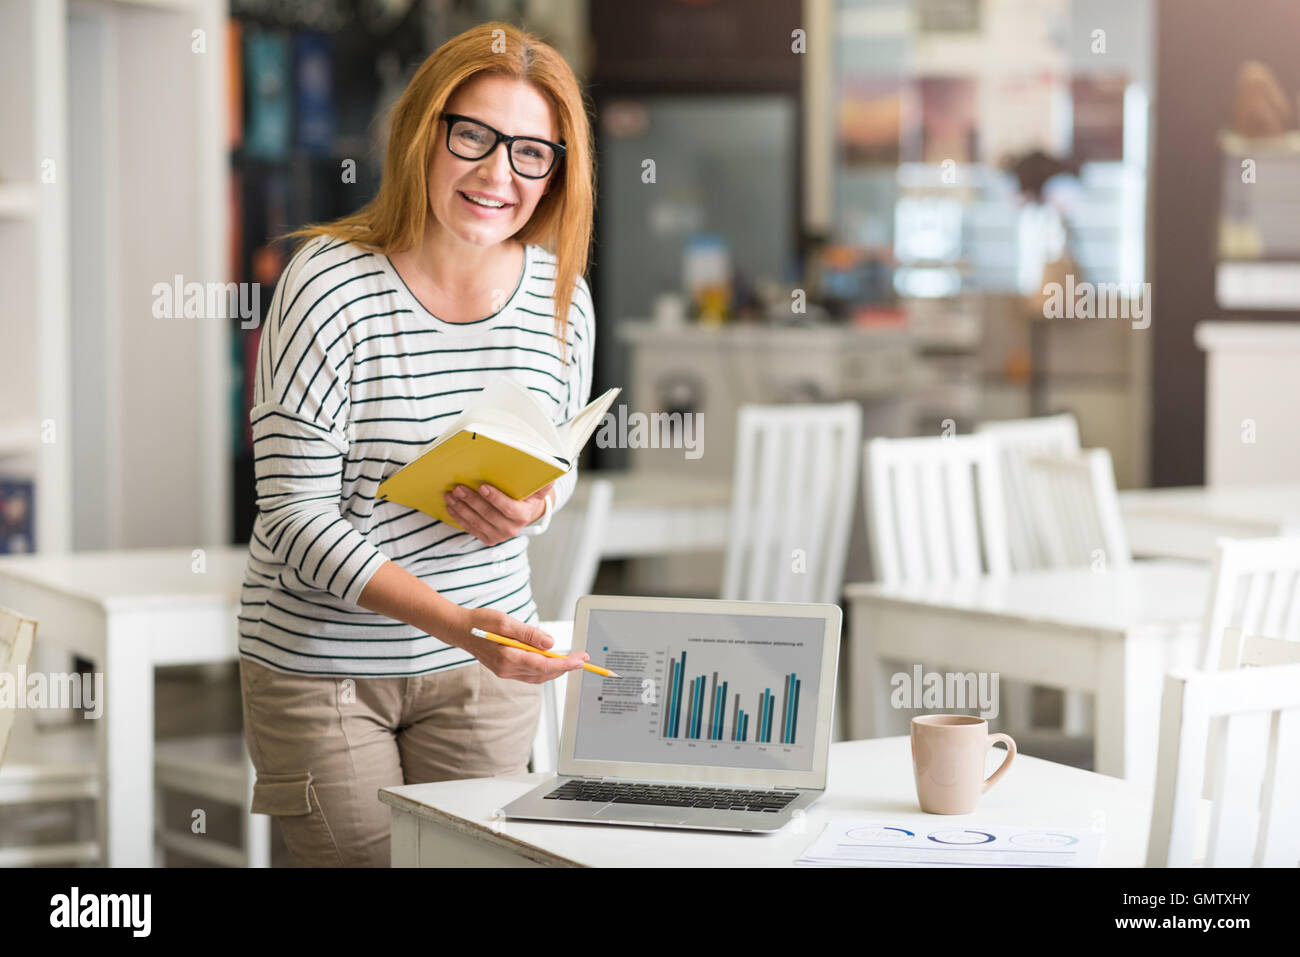 Positive woman working on the project - Stock Image